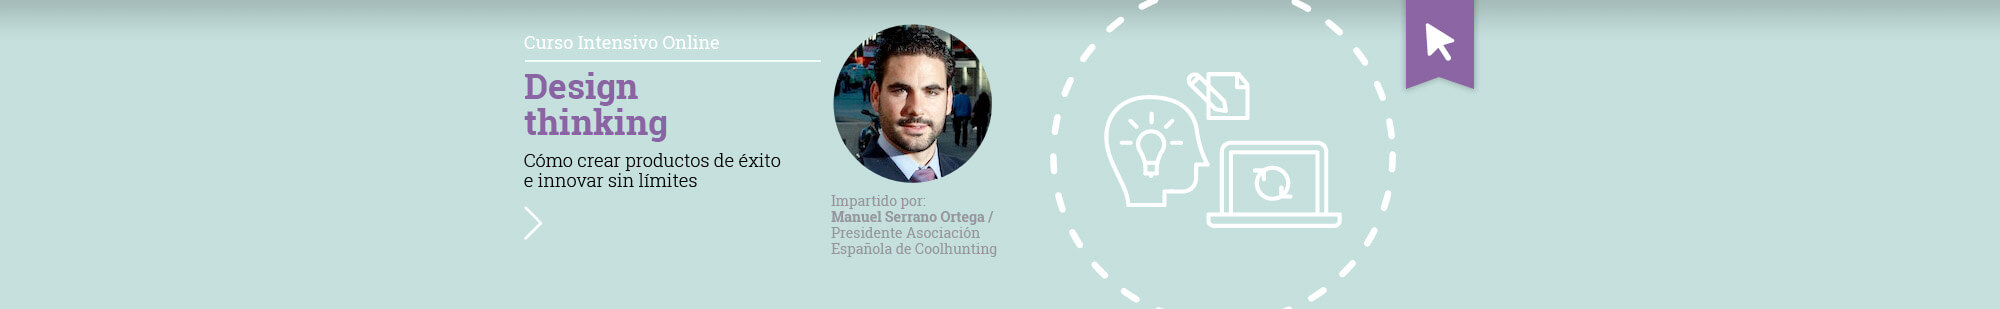 Curso Intensivo Online: Design Thinking